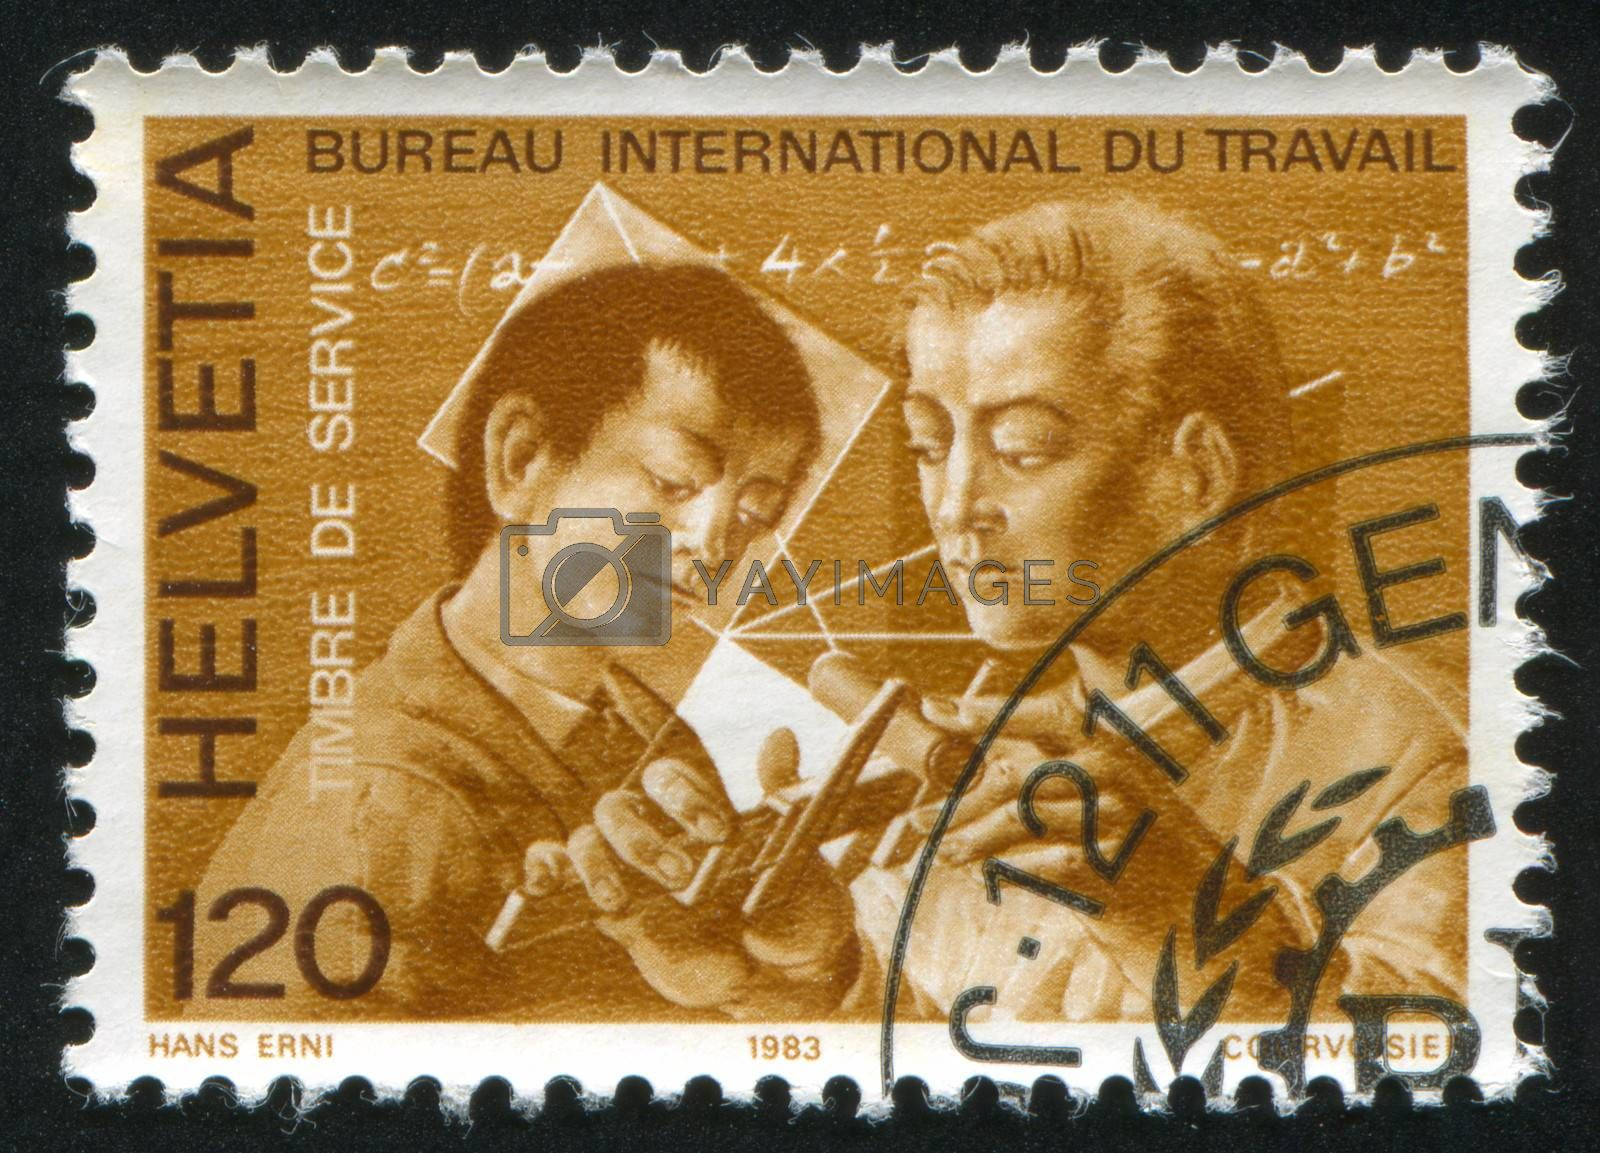 SWITZERLAND - CIRCA 1988: stamp printed by Switzerland, shows Professional education for youth, circa 1988